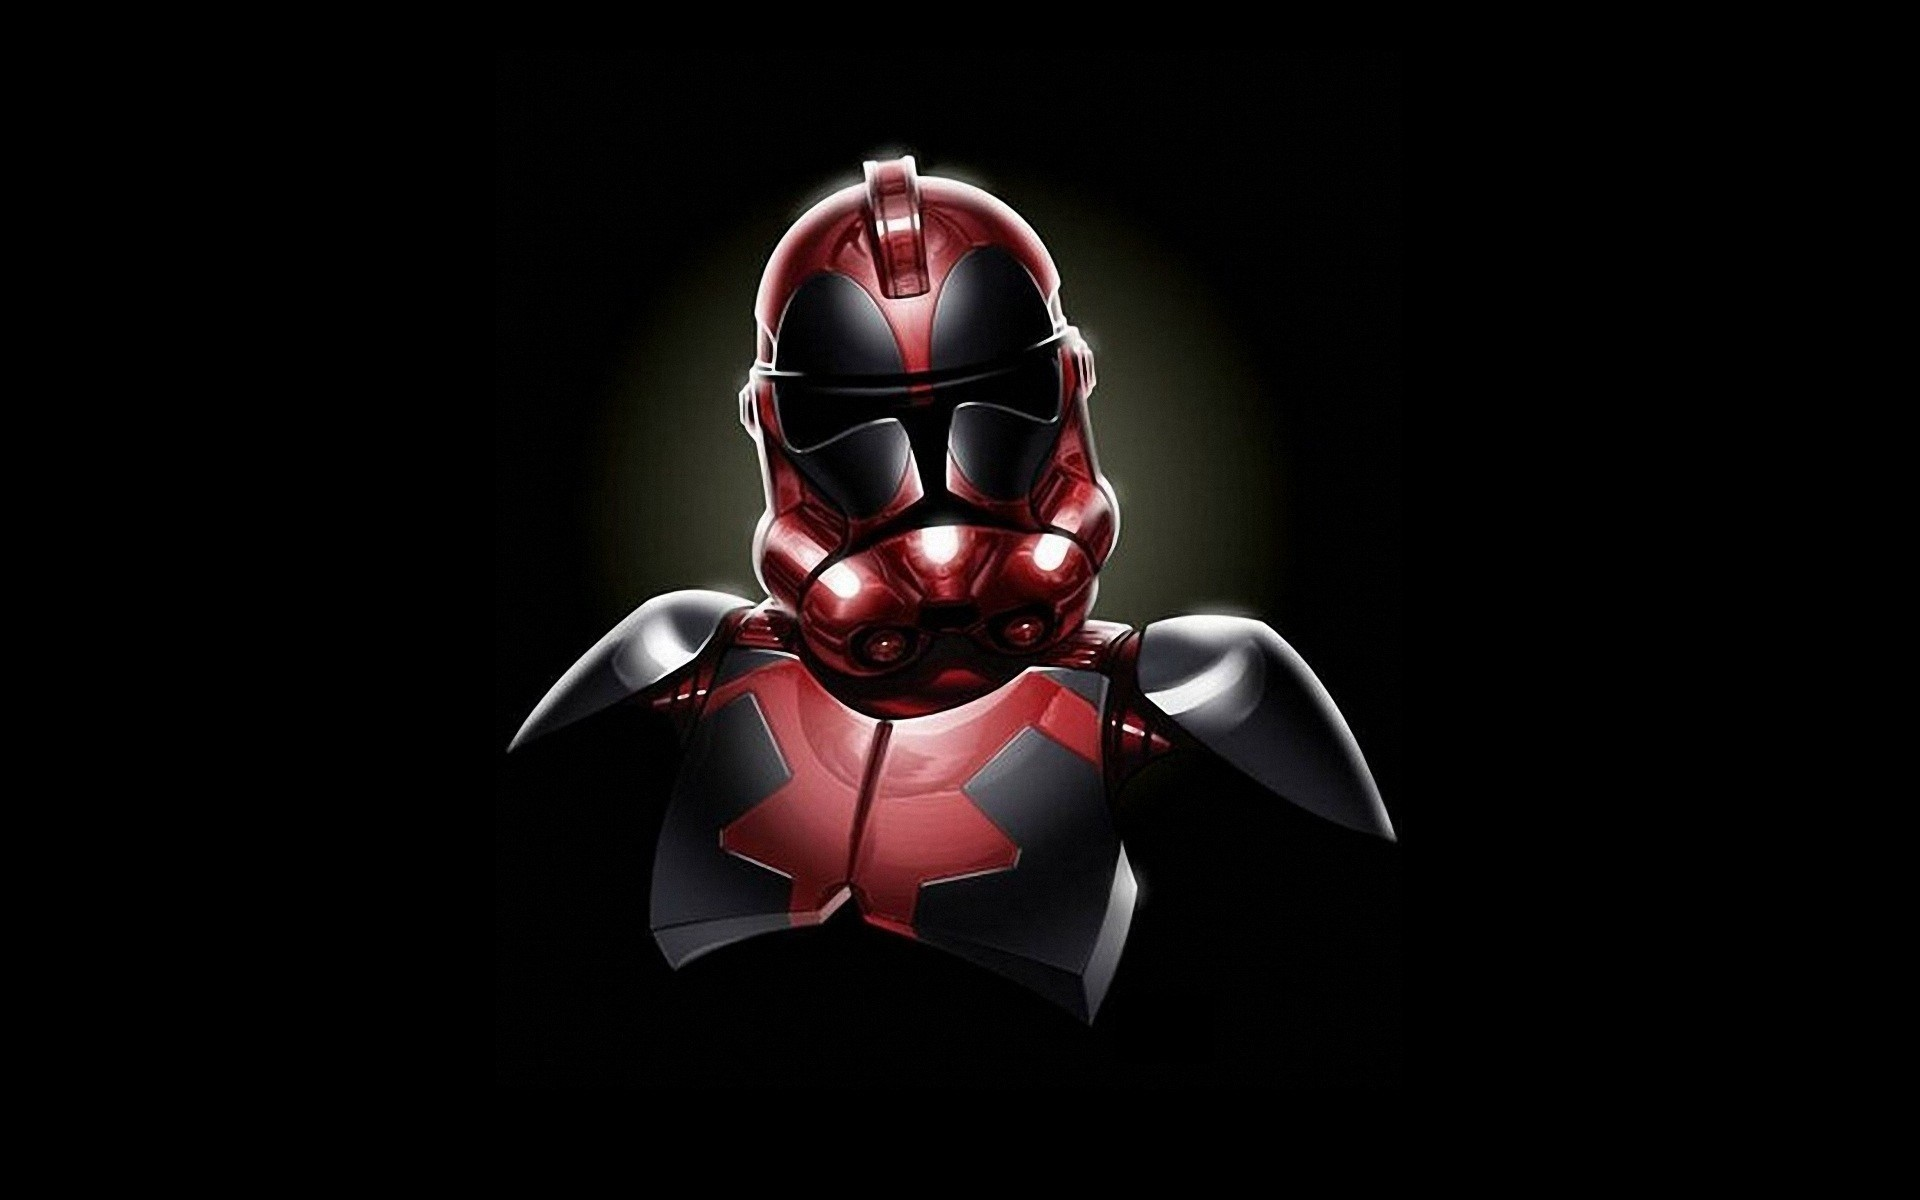 Free Download Clone Trooper Wallpaper 72 Images 1920x1200